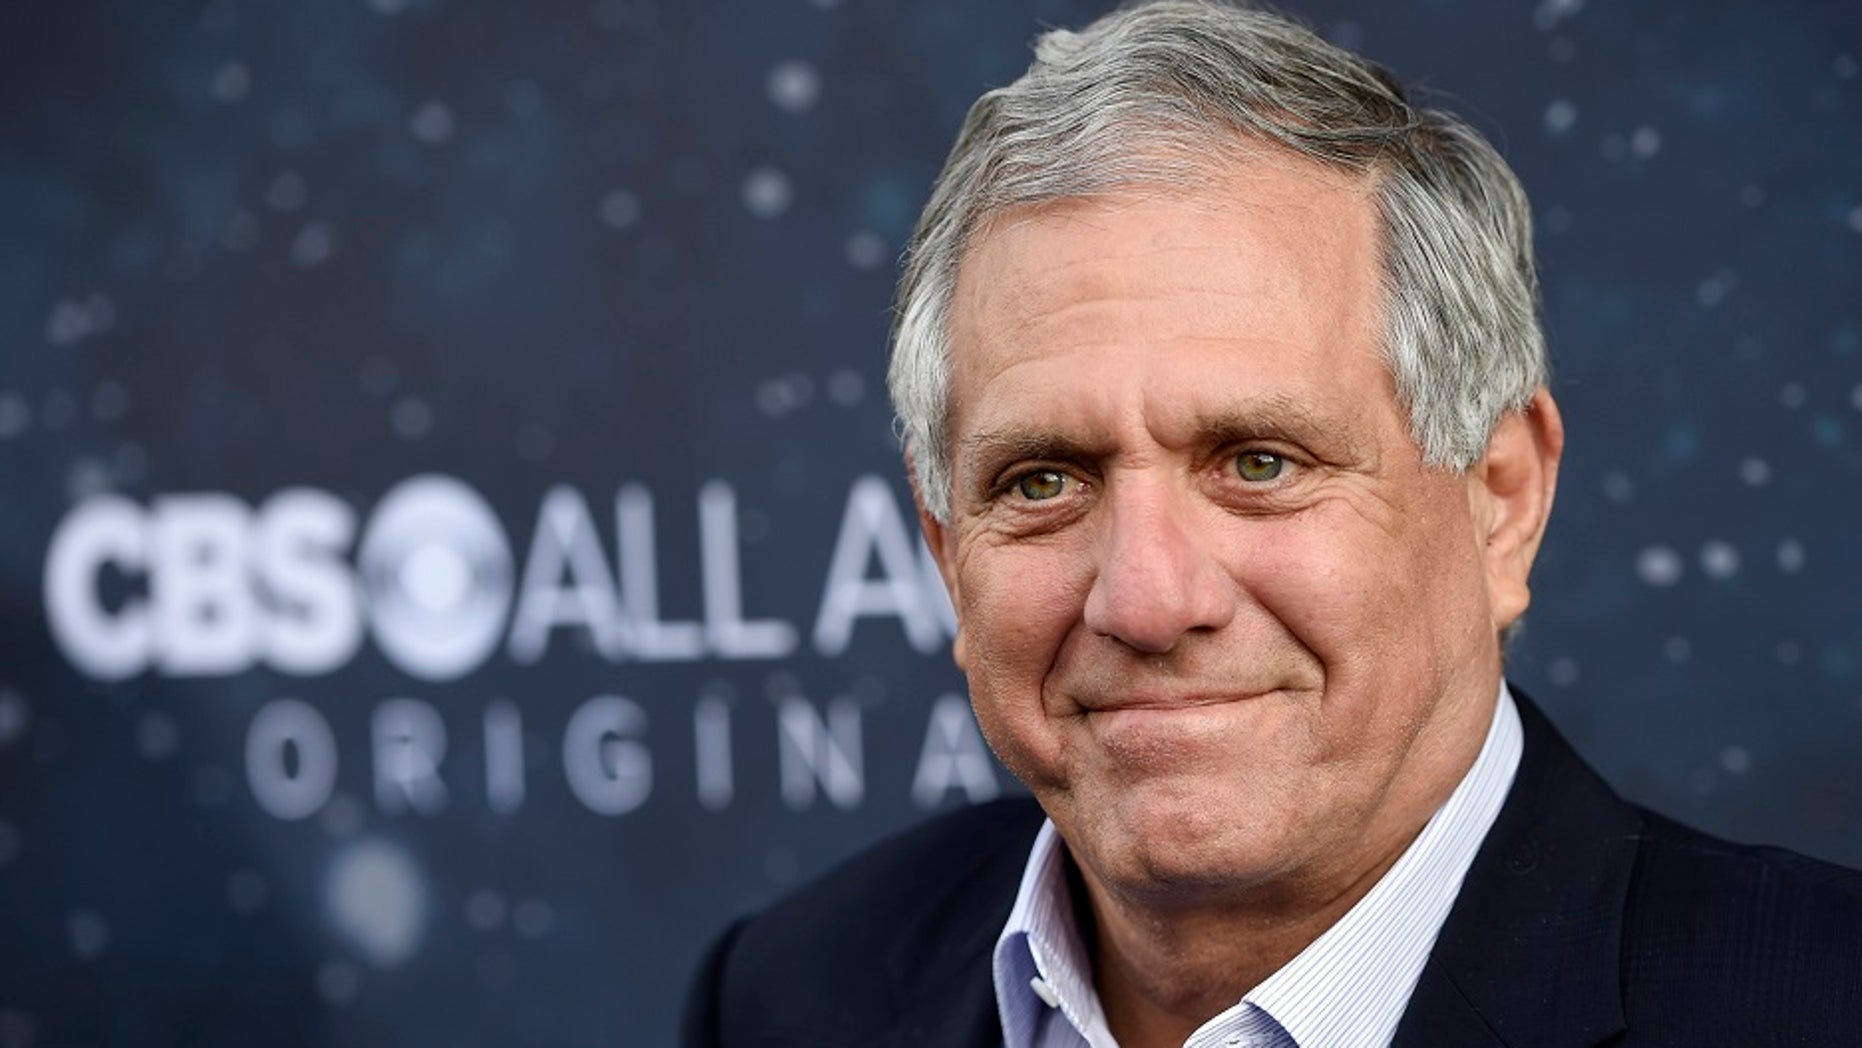 """FILE - In this Sept. 19, 2017, file photo, Les Moonves, chairman and CEO of CBS Corporation, poses at the premiere of the new television series """"Star Trek: Discovery"""" in Los Angeles. Two of the most powerful men in the U.S. television industry lost their jobs at least partly due to sexual misconduct allegations. Moonves stepped down as head of CBS Corp. Moonves has denied the allegation against him. (Photo by Chris Pizzello/Invision/AP, File)"""